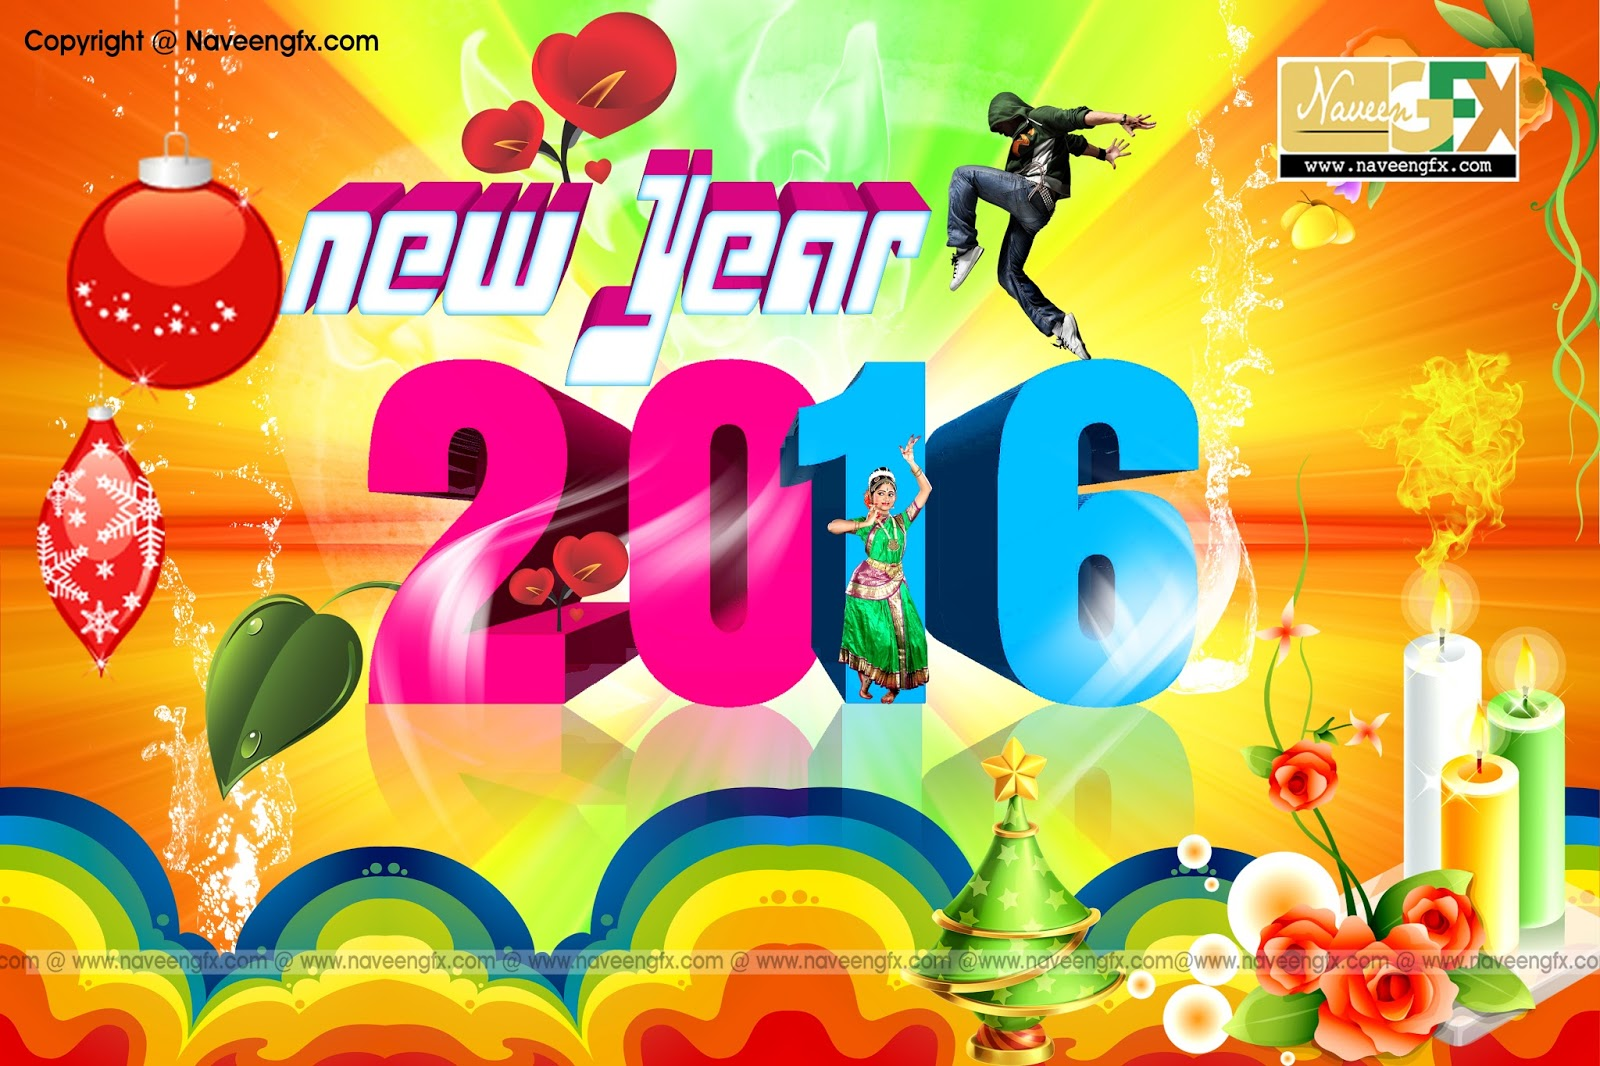 New years 2016 greeting cards psd templates free downloads naveengfx happy new year 2016 greeting card psd backgrounds m4hsunfo